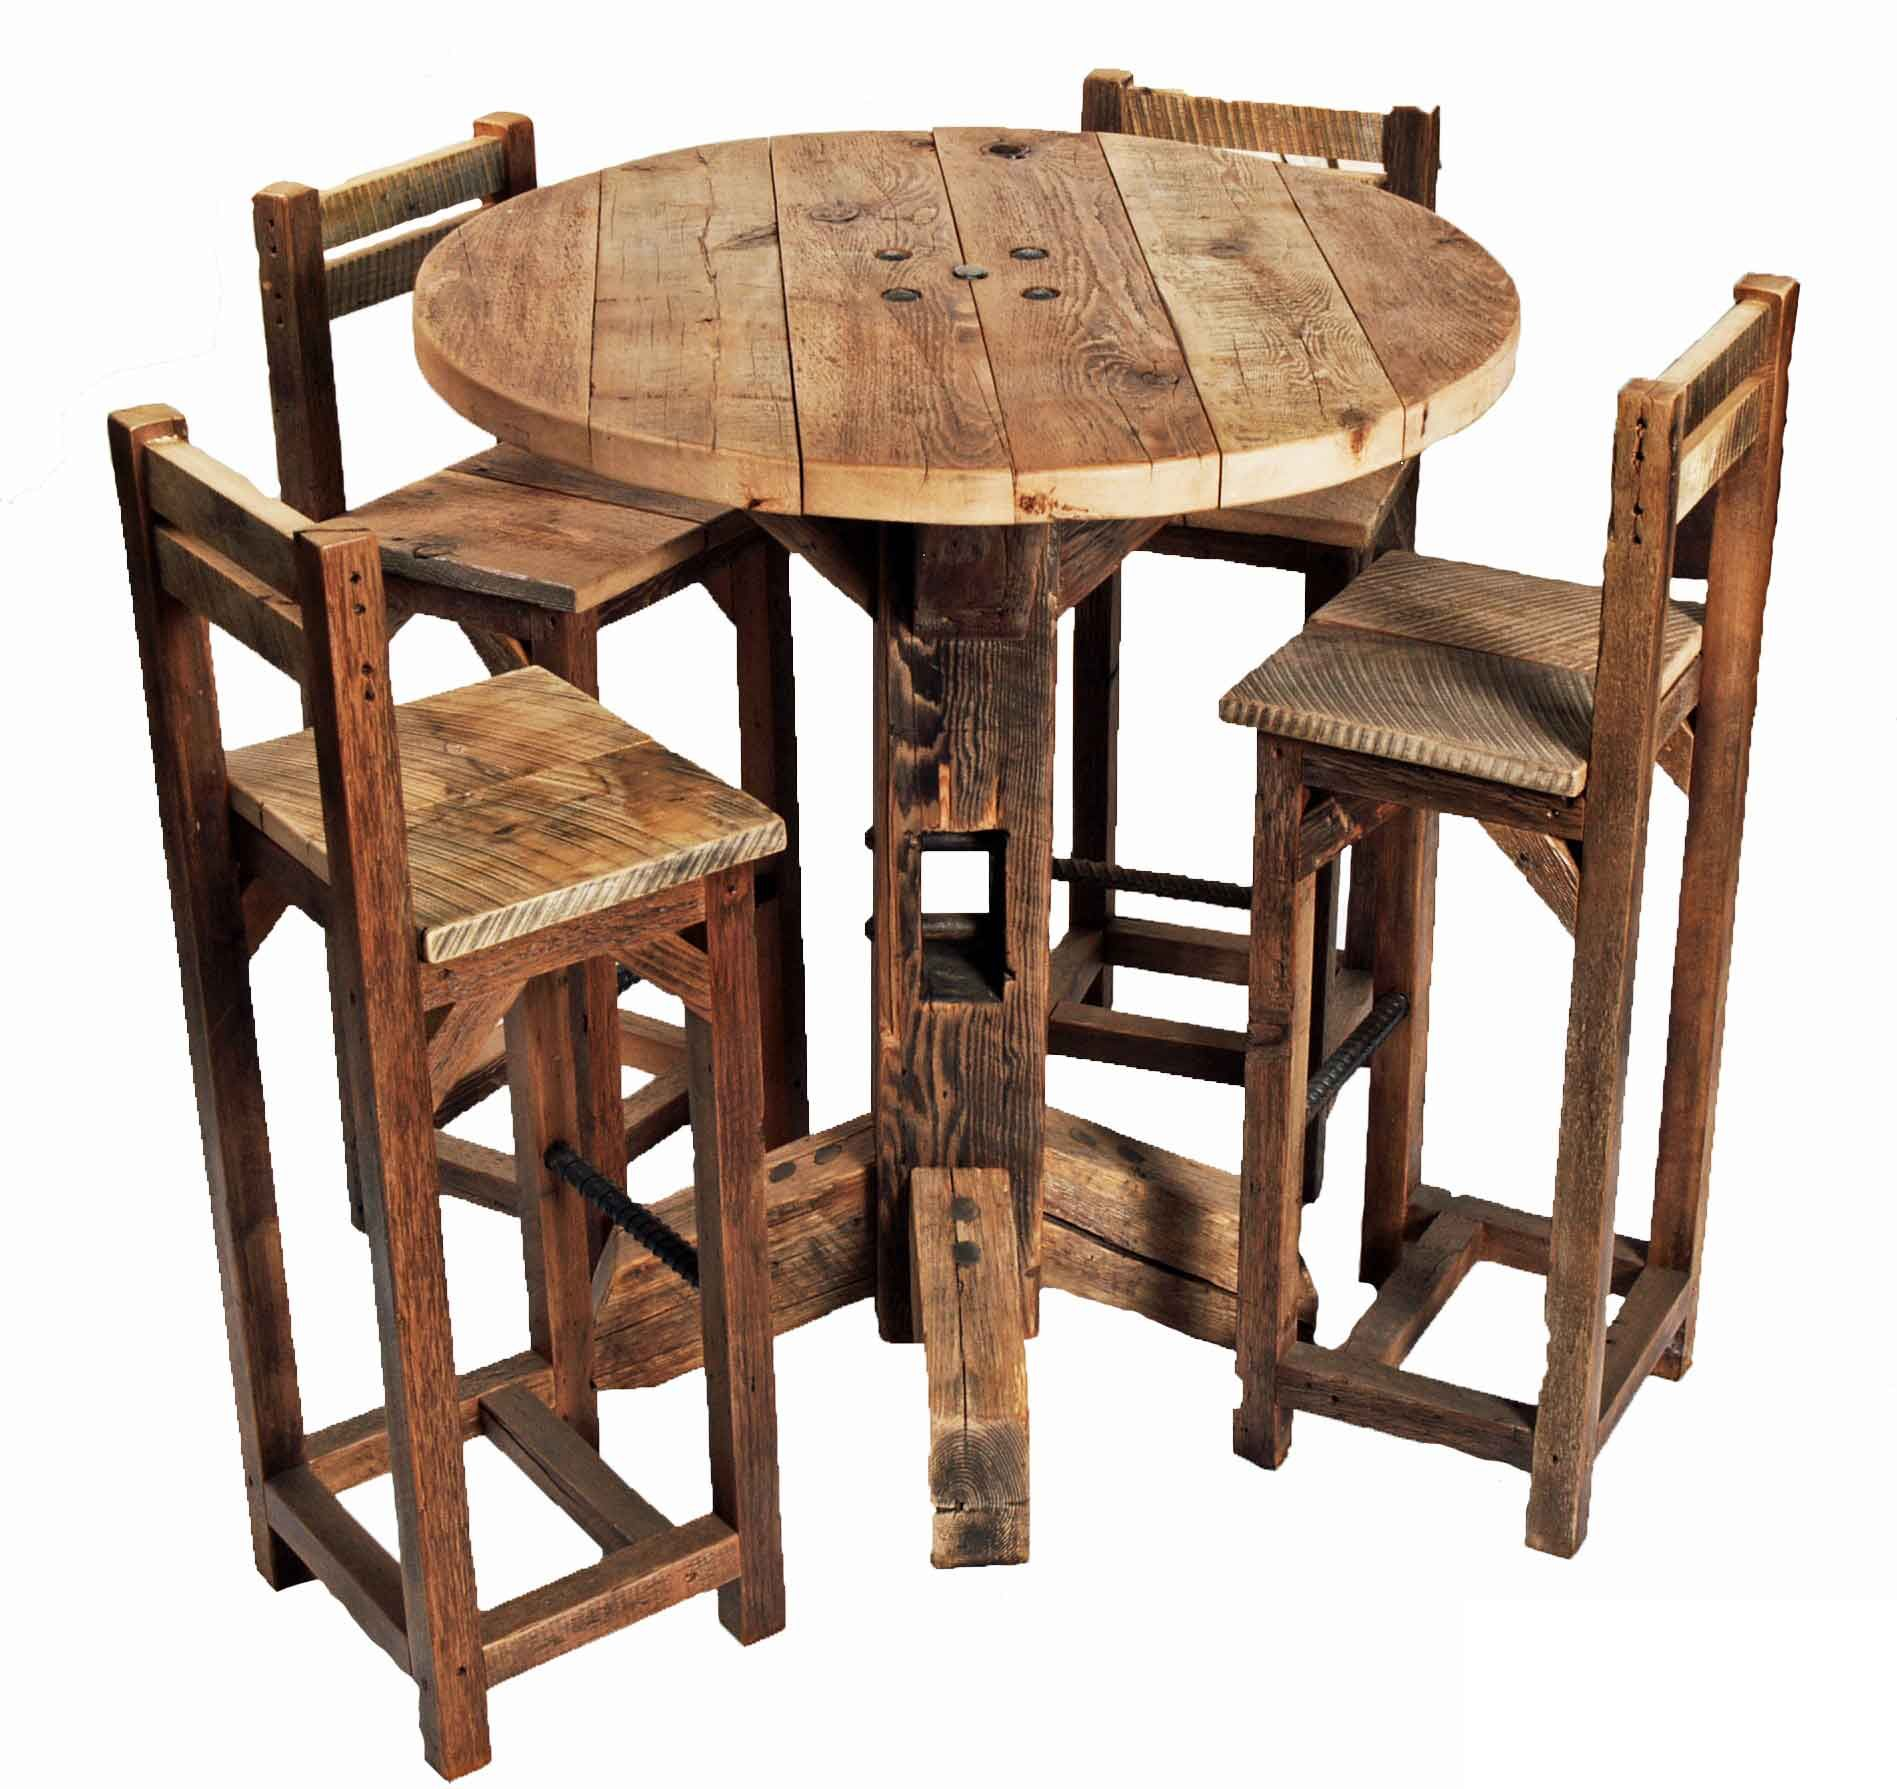 furniture old rustic small high round top kitchen table and chair furniture old rustic small high round top kitchen table and chair with high legs and